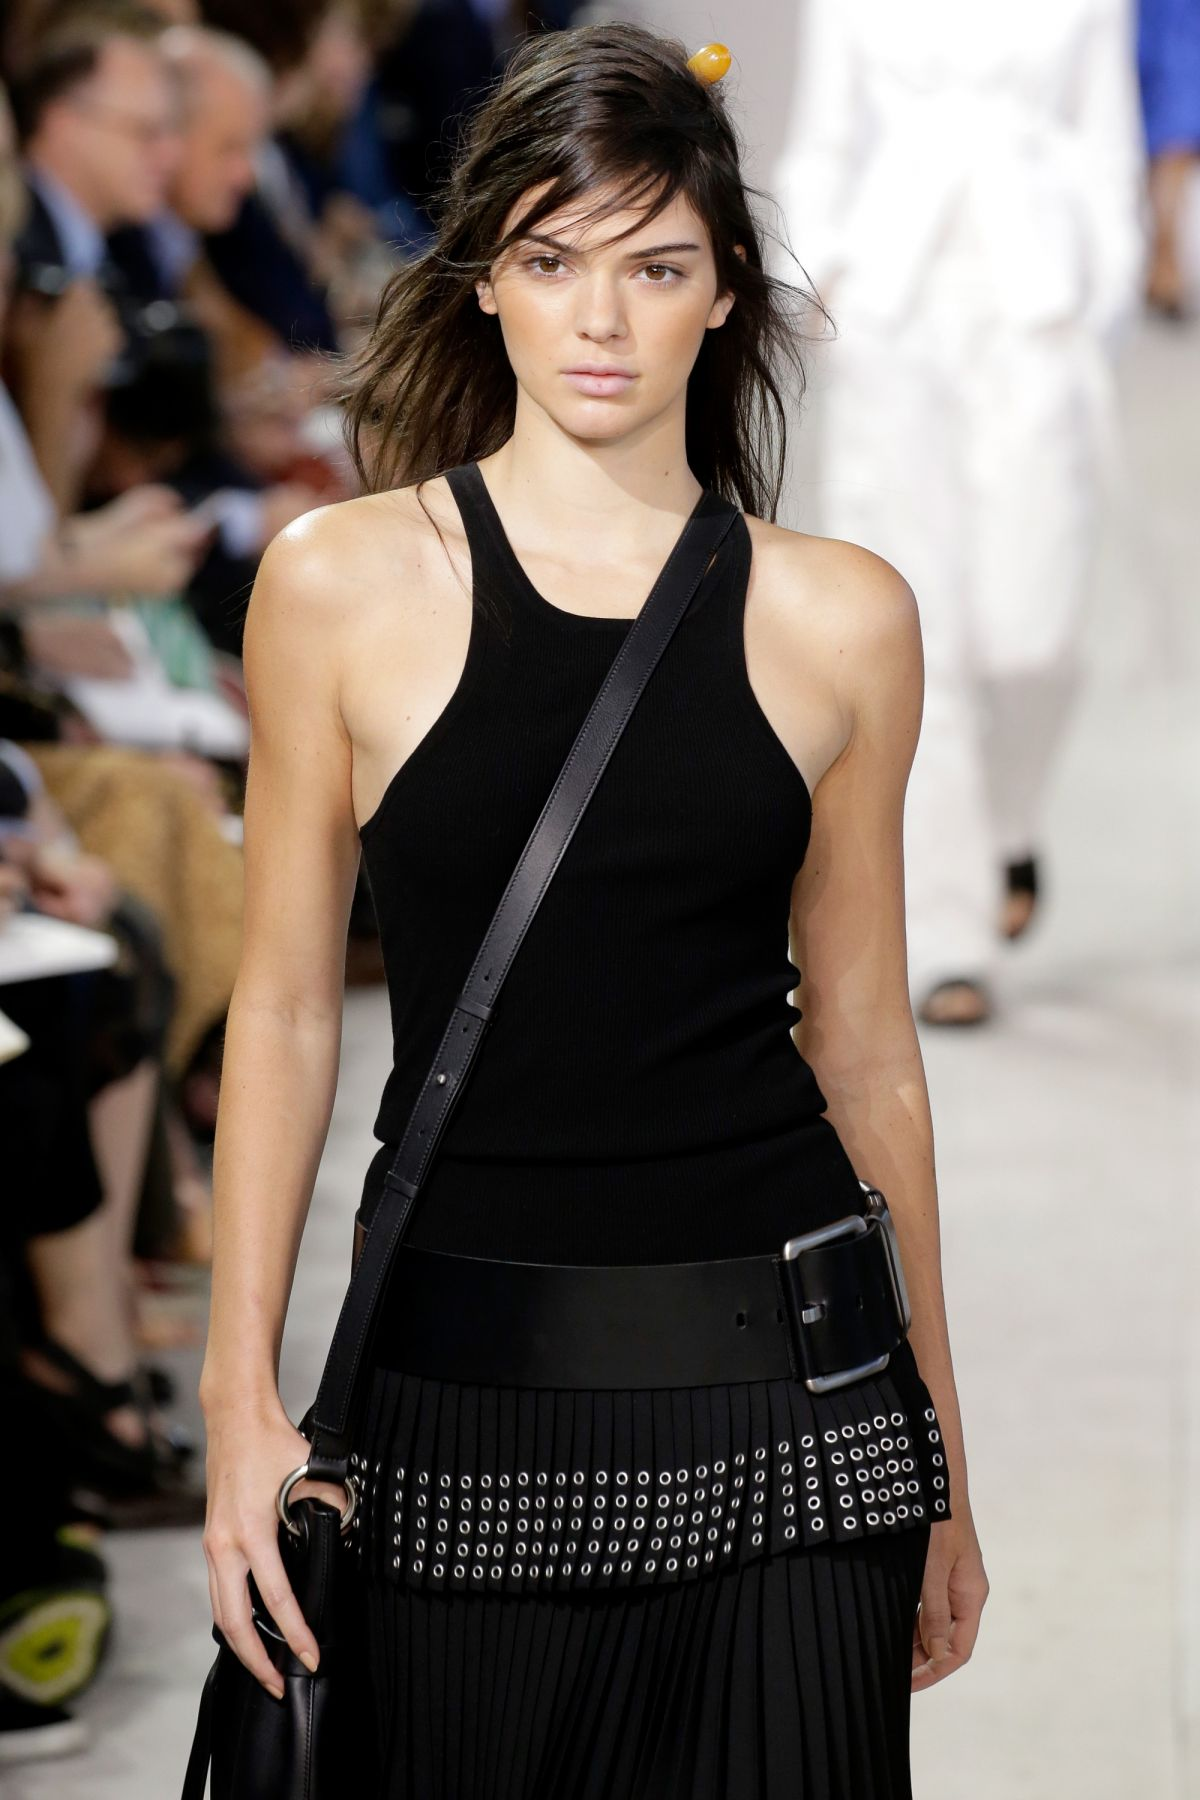 Kendall Jenner At Mchael Kors Fashion Show At New York Fashion Week 09 16 2015 Hawtcelebs